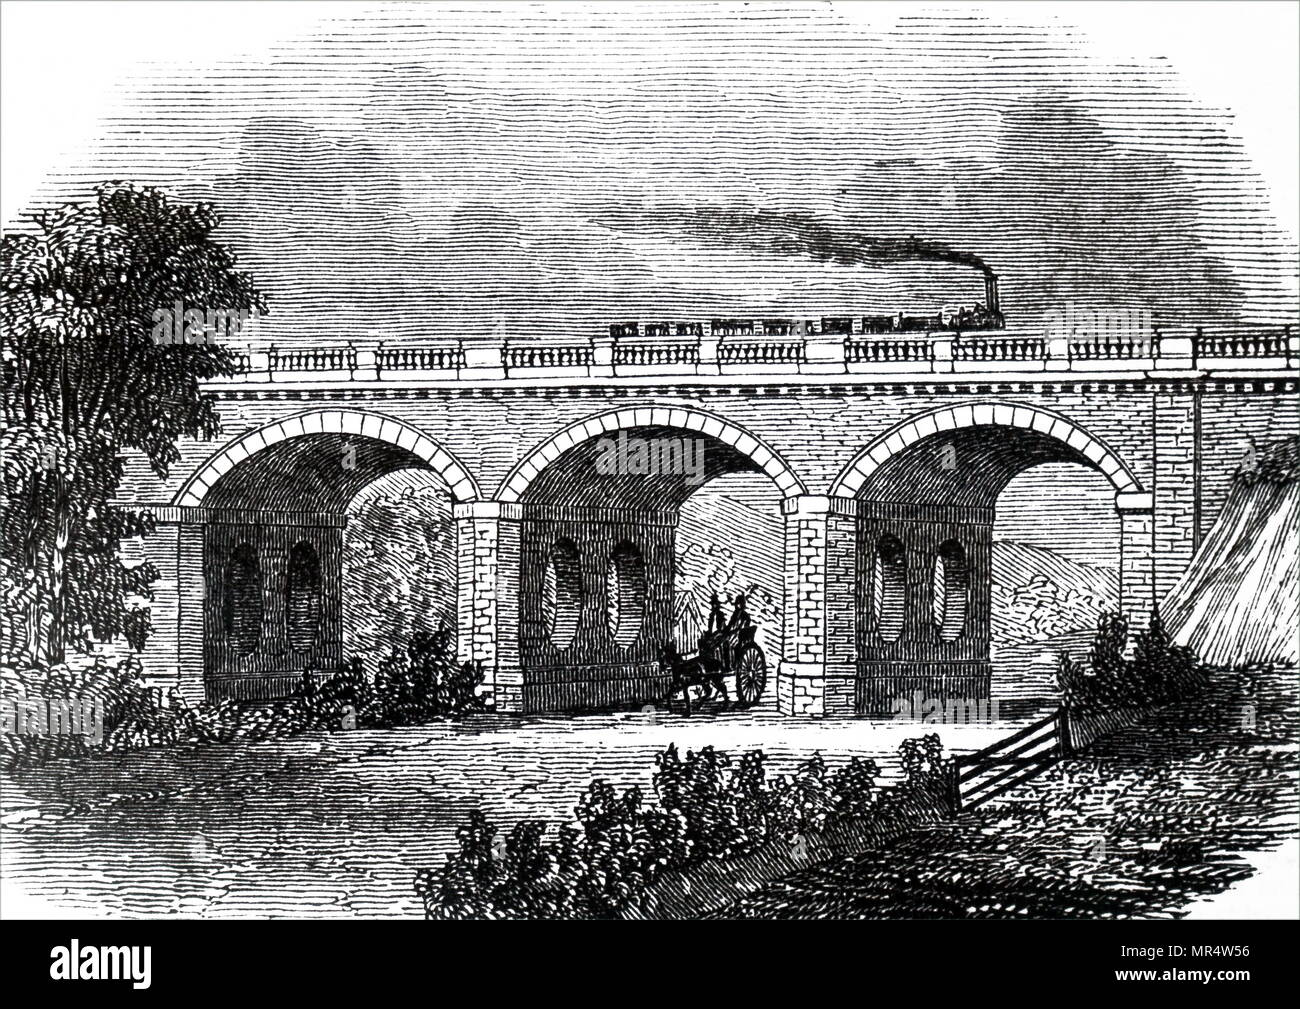 Engraving depicting the Skew bridge across the Lewes turnpike road at Hodshrove. Dated 19th century - Stock Image